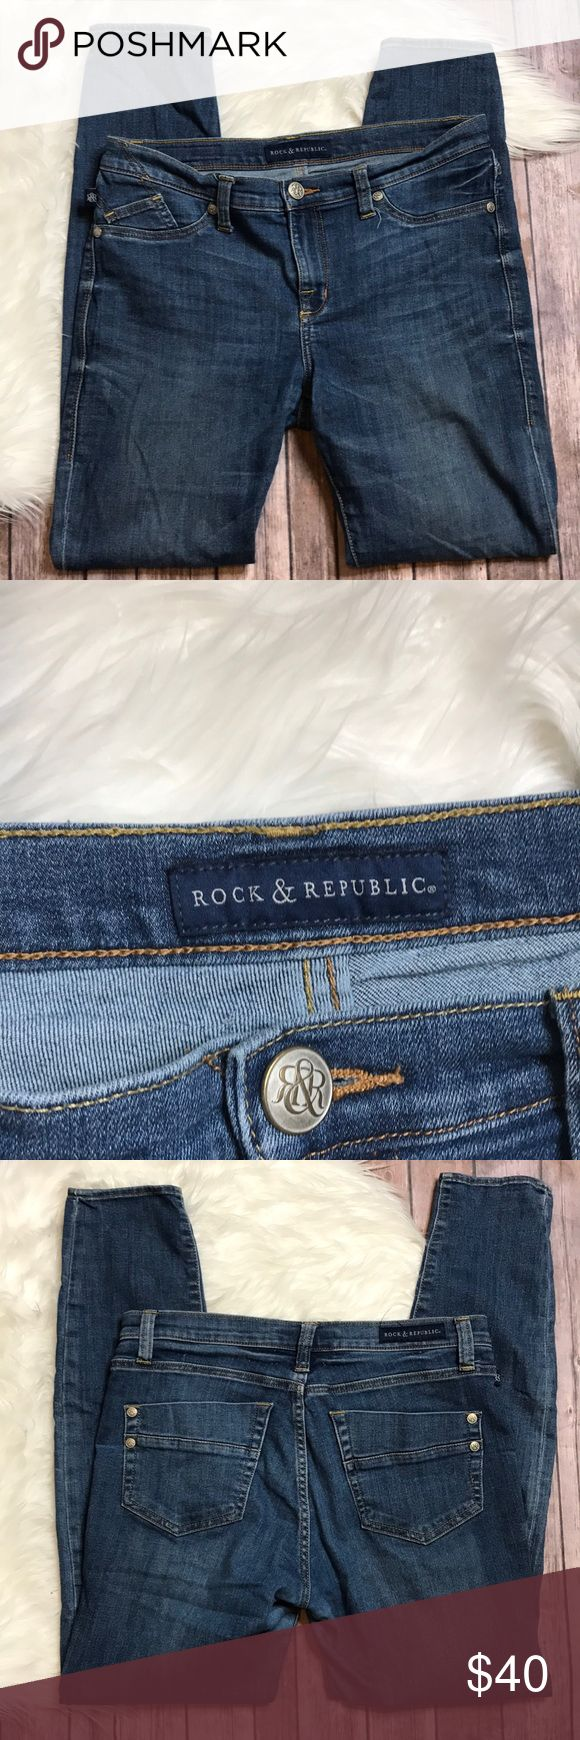 """Rock & Republic Jeans Size 12L Waist 16"""" Inseam 30"""" Length 40"""" Pre-owned with no defects see pictures for details.   If you have any questions, or need measurements please feel free to ask and we will respond in a timely manner. Rock & Republic Jeans Skinny"""